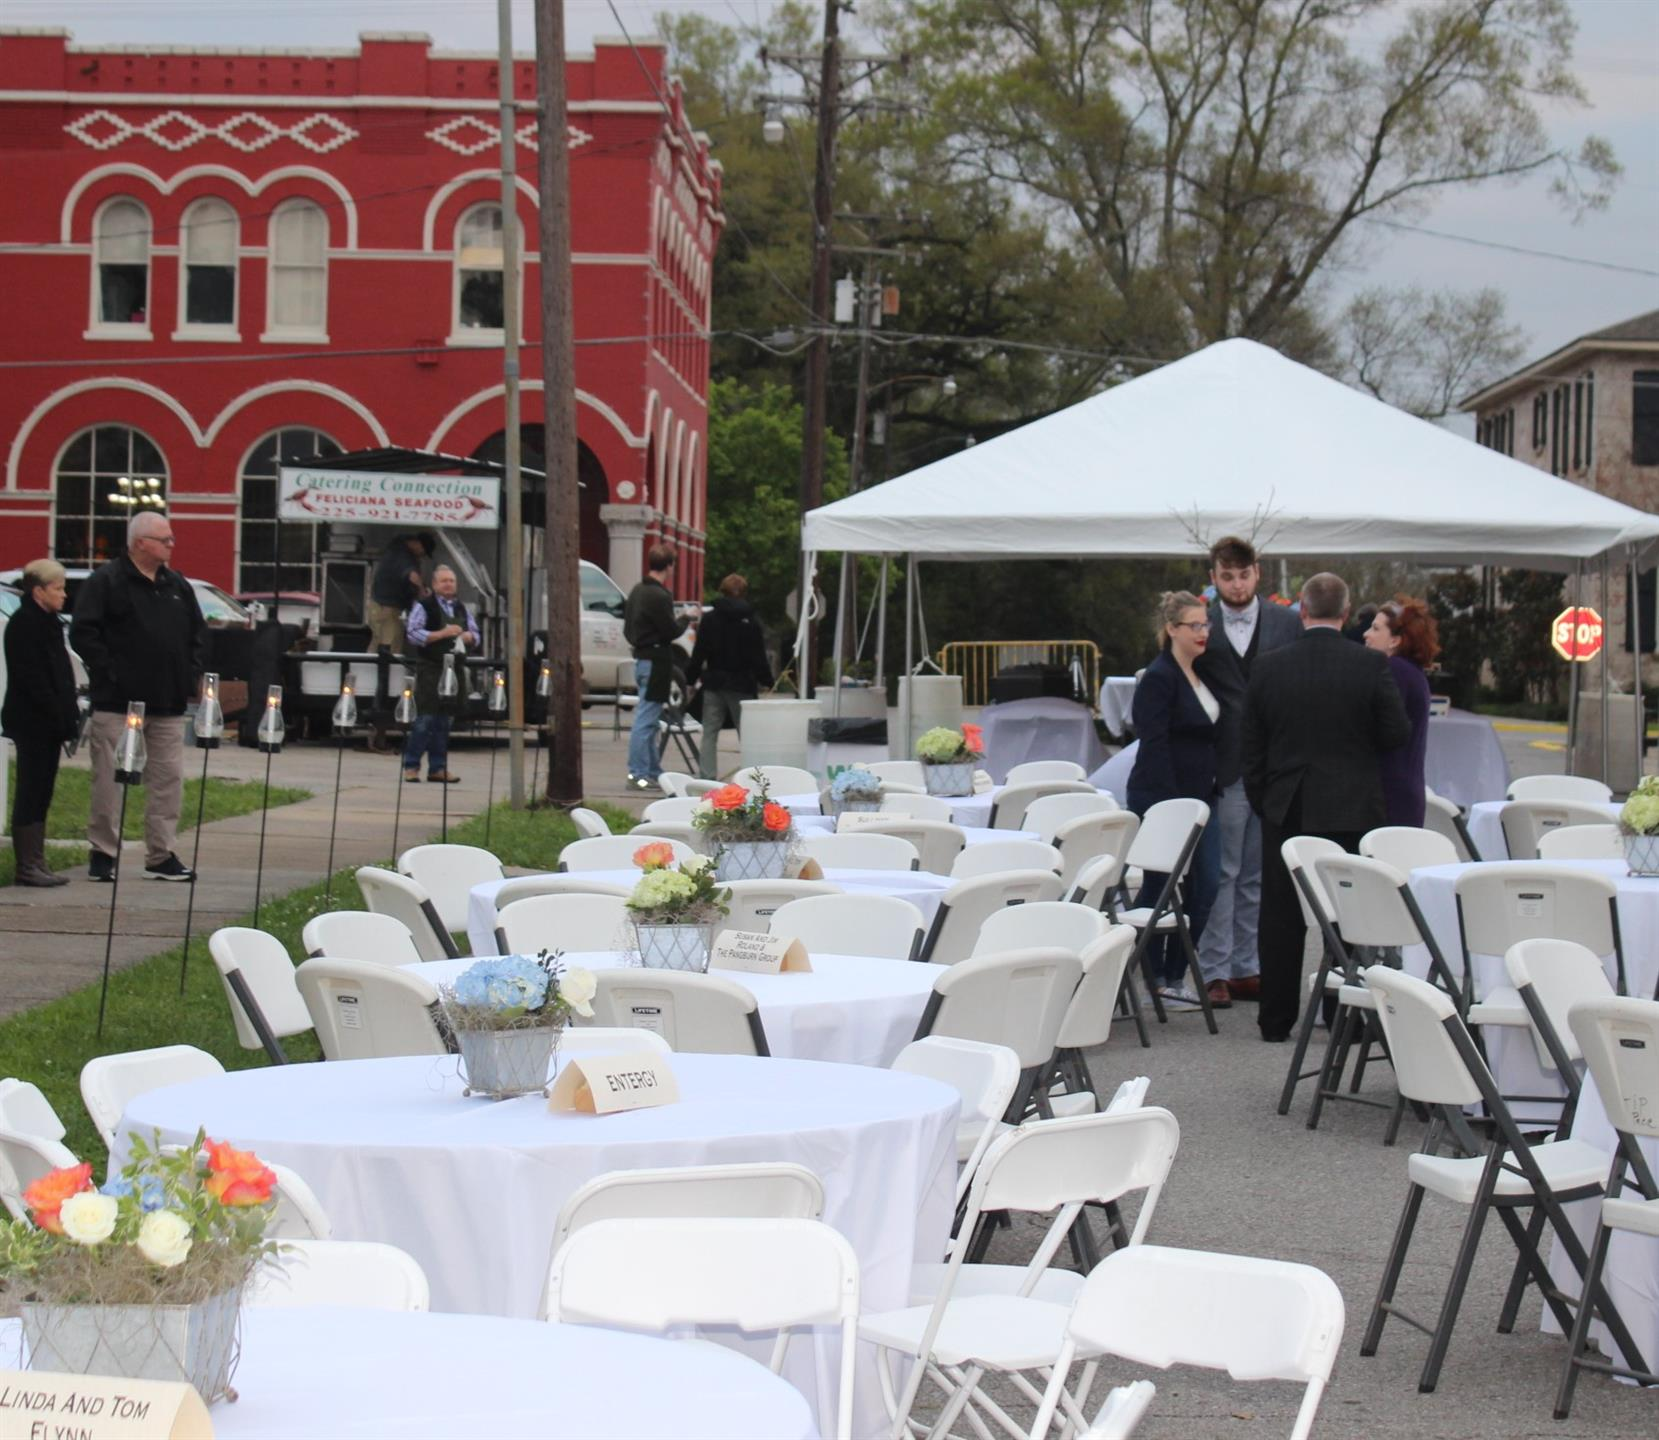 catering event setup with tents, tables and chairs